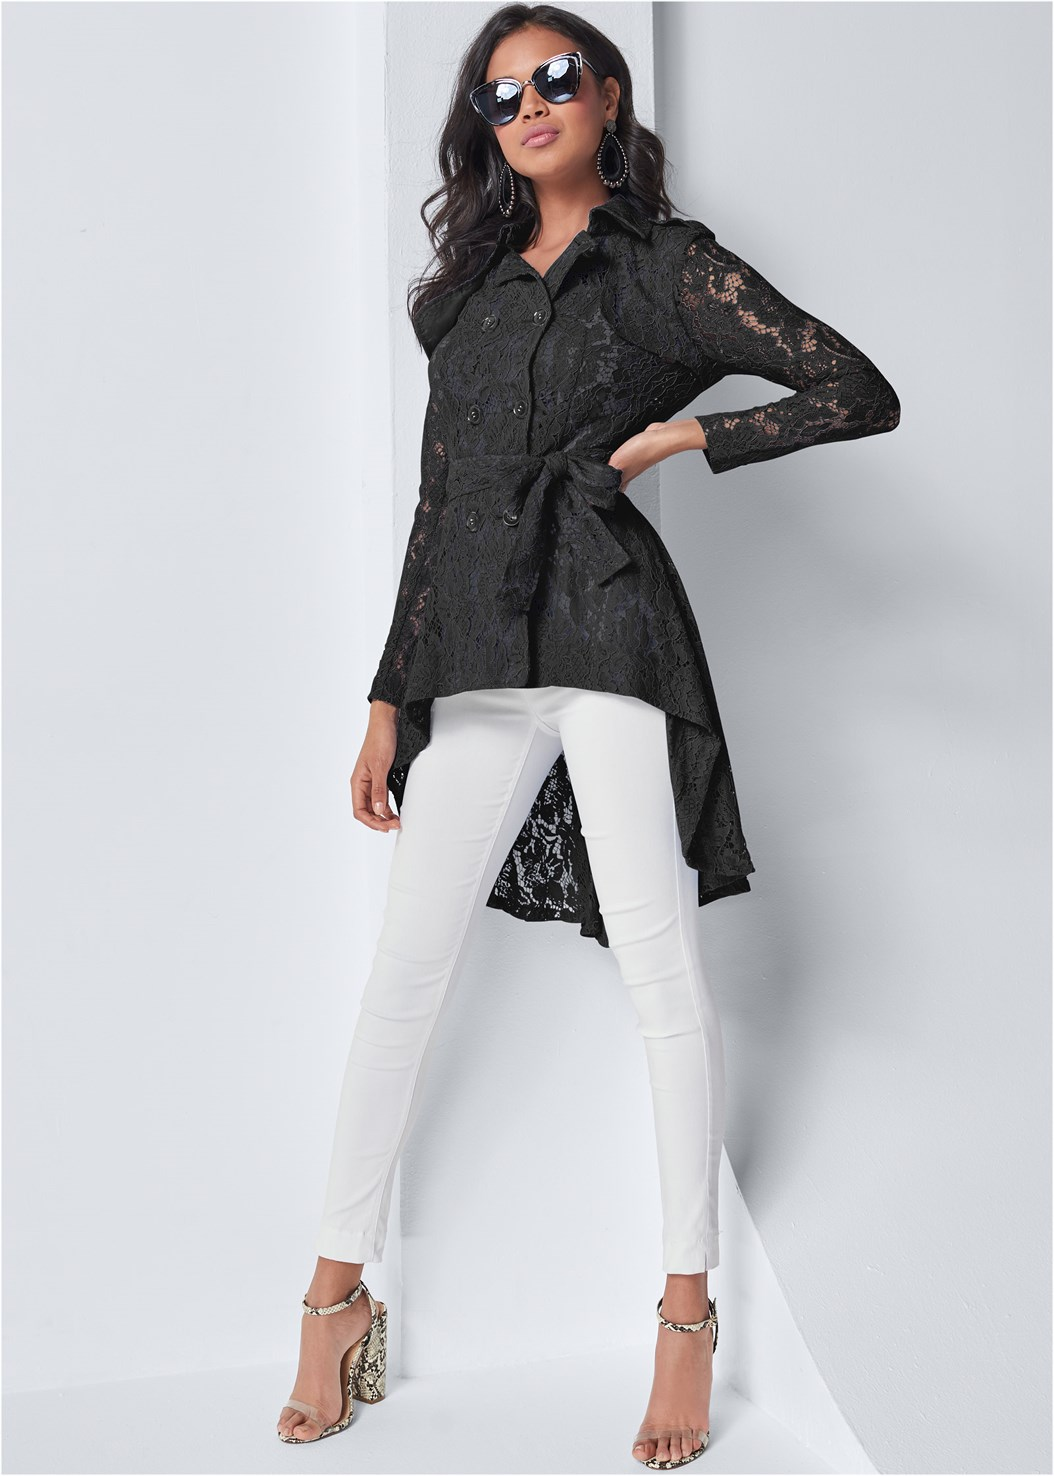 Lace High Low Trench Coat,Basic Cami Two Pack,Mid Rise Slimming Stretch Jeggings,Lucite Detail Print Heels,Beaded Hoop Earrings